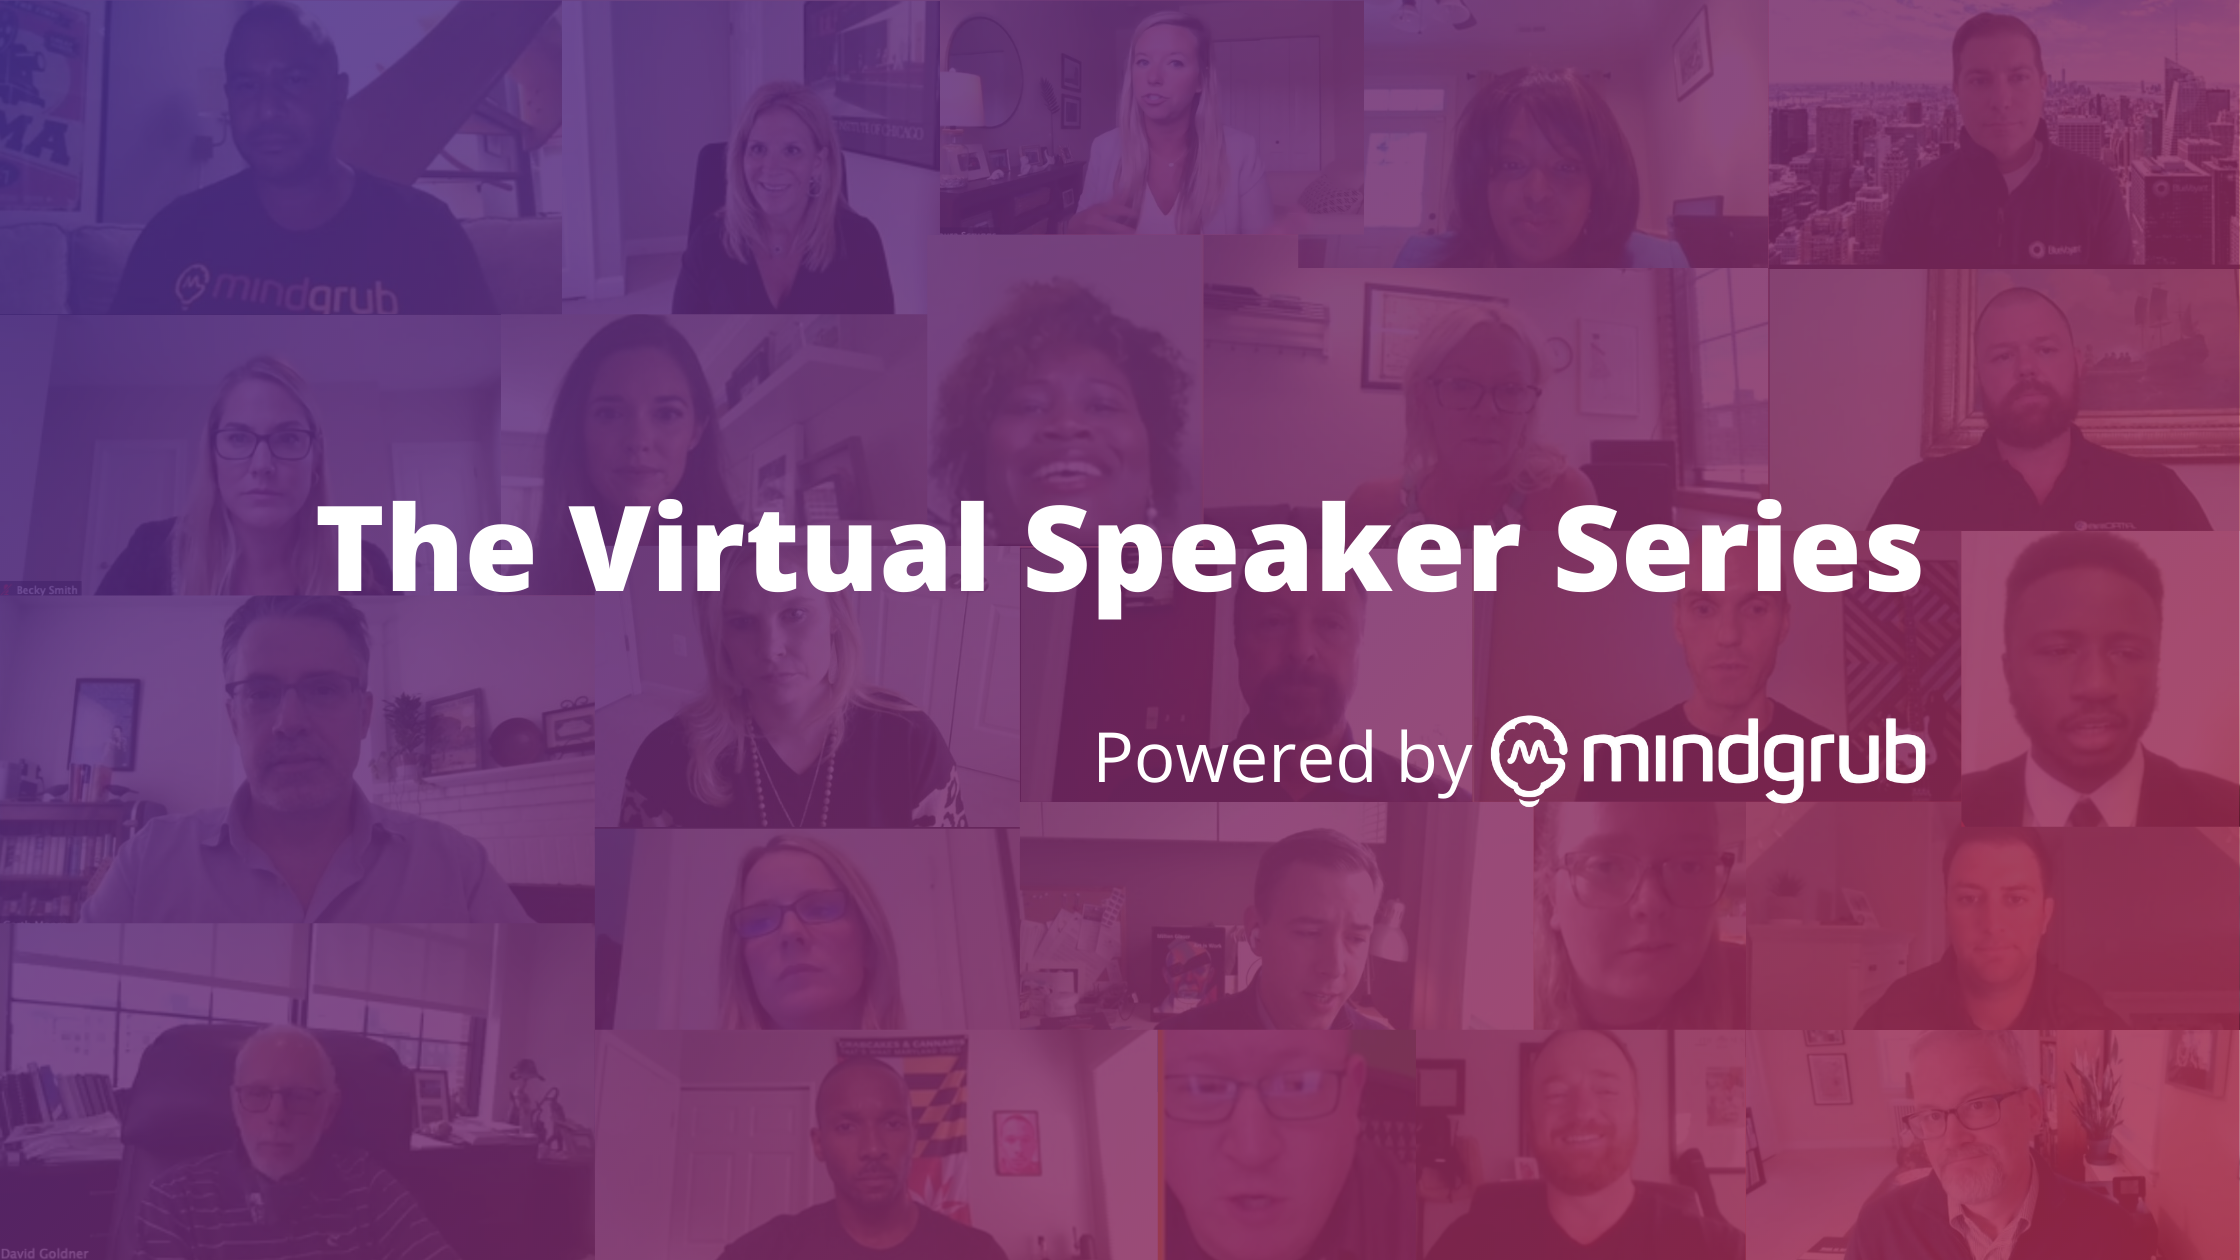 The Virtual Speaker Series - Powered by Mindgrub